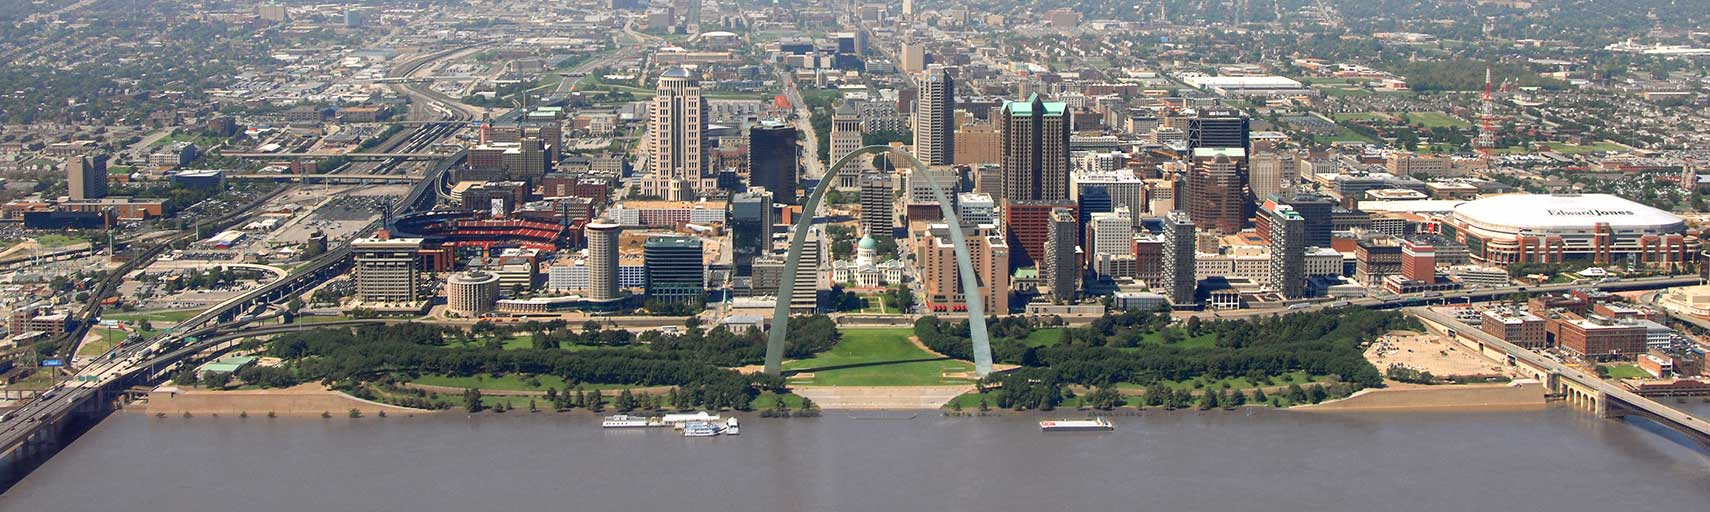 Google Map of the City of Saint Louis, Missouri, USA - Nations ...